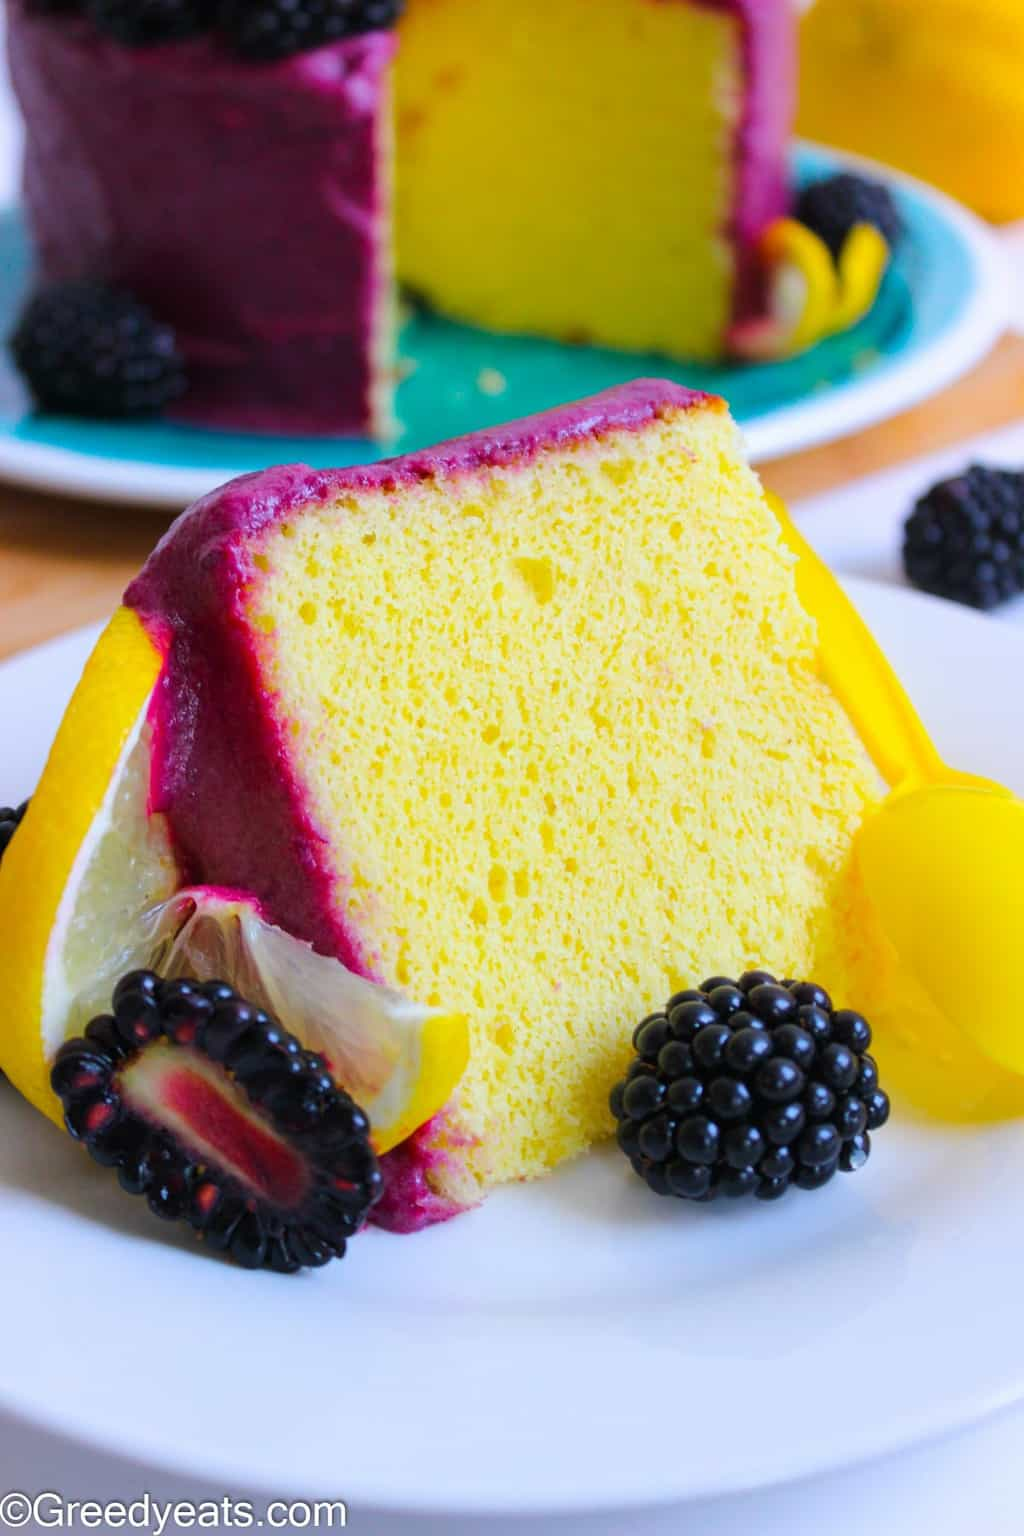 This Lemon Chiffon Cake recipe will transport you directly into the lemon fields. It bakes so moist, lemony and refreshing!